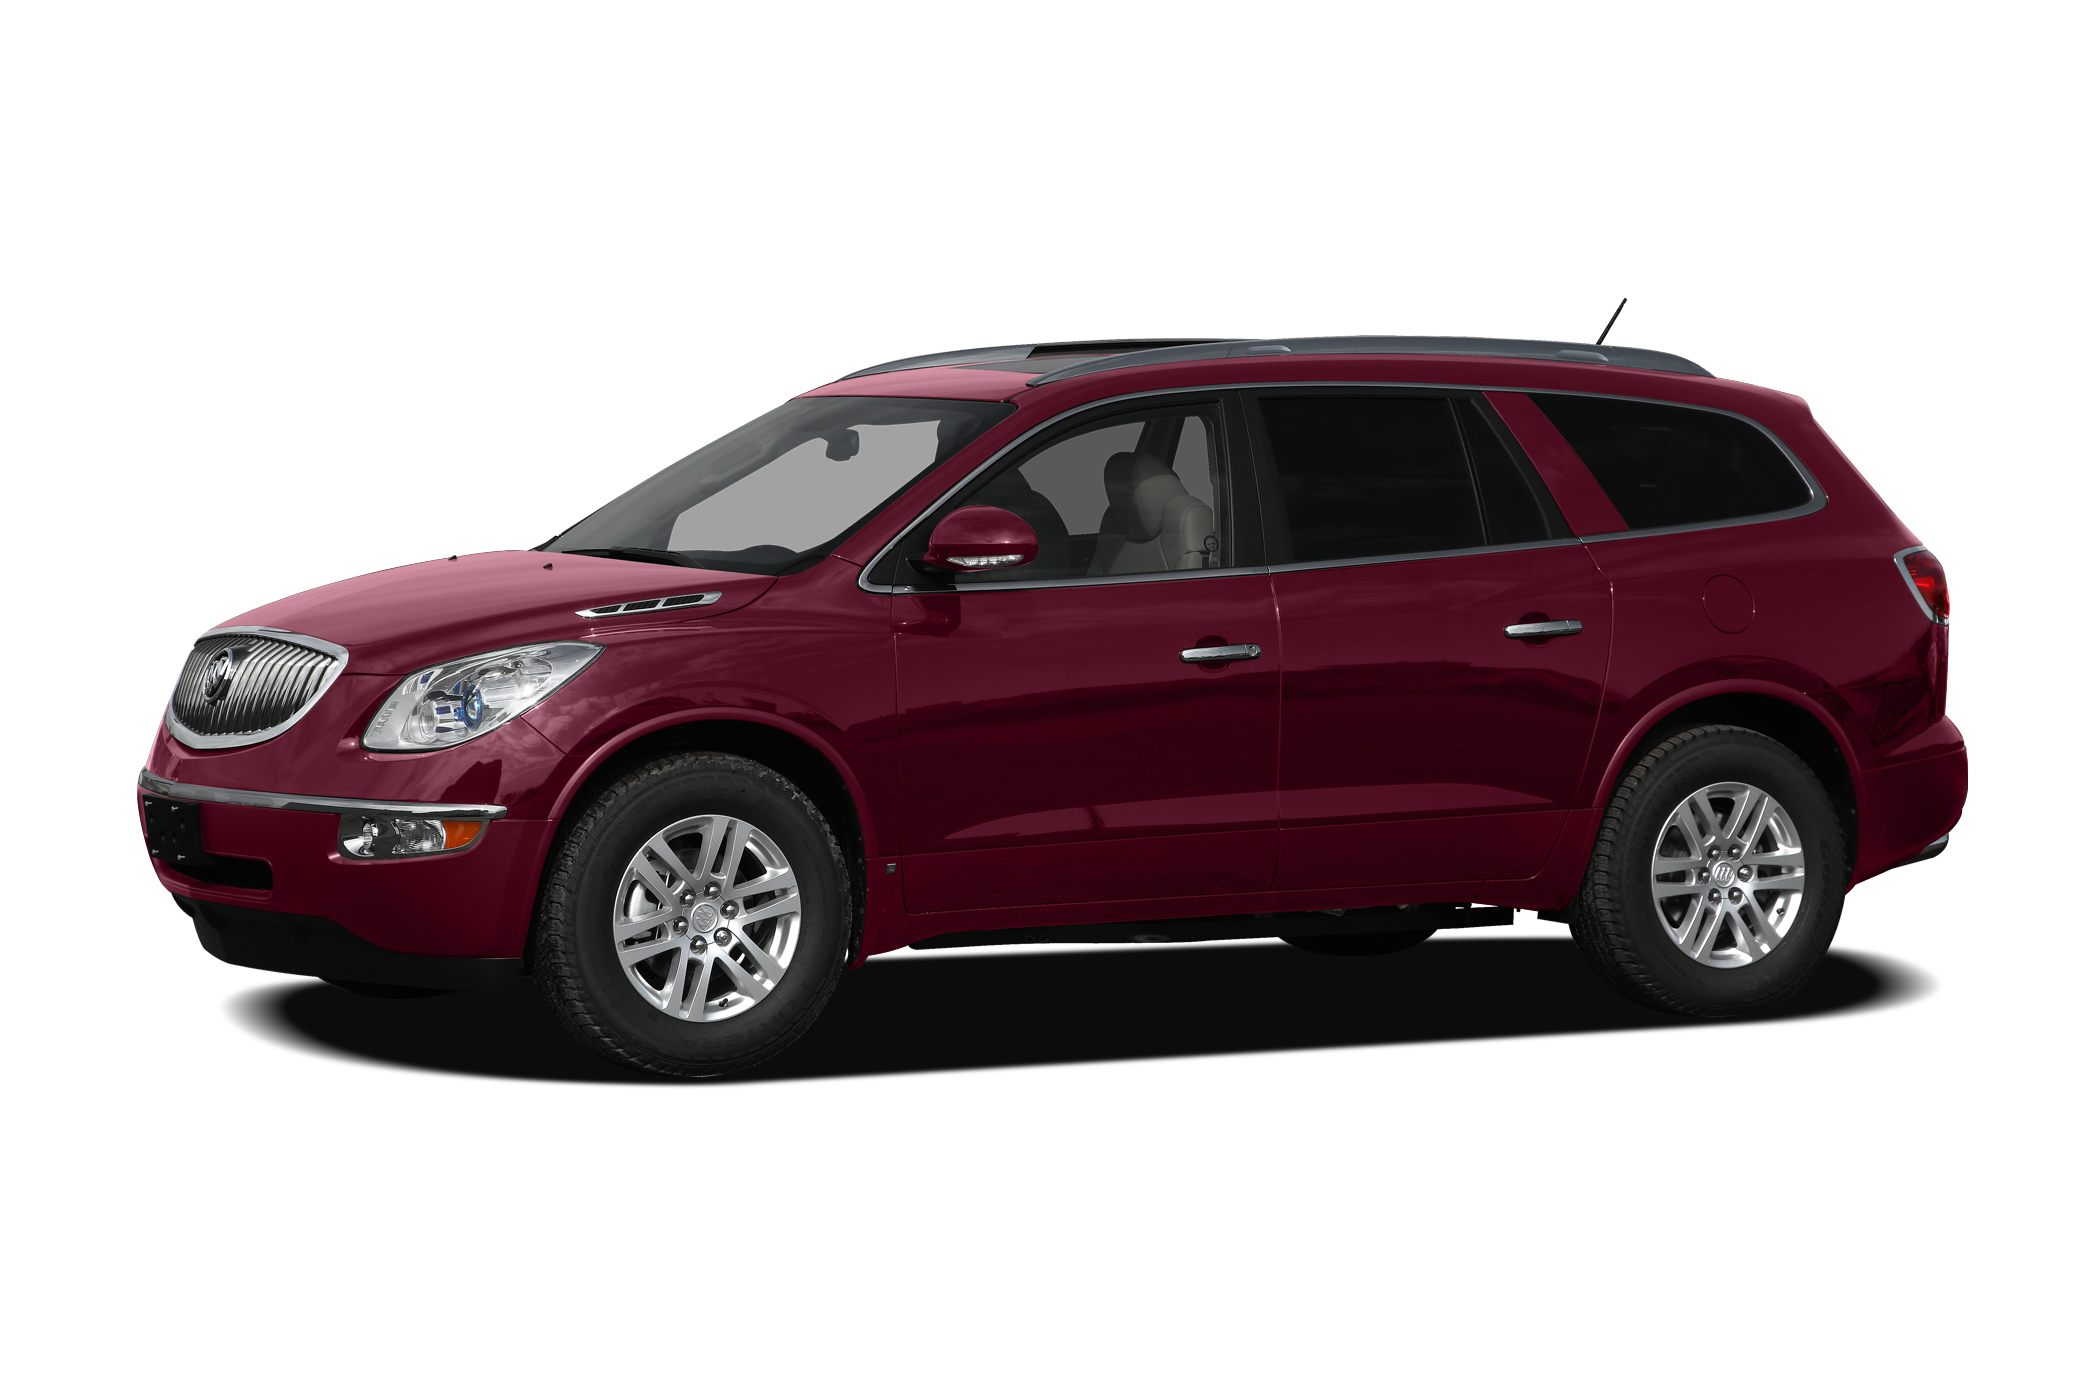 2009 Buick Enclave CX SUV for sale in Erie for $16,995 with 67,371 miles.